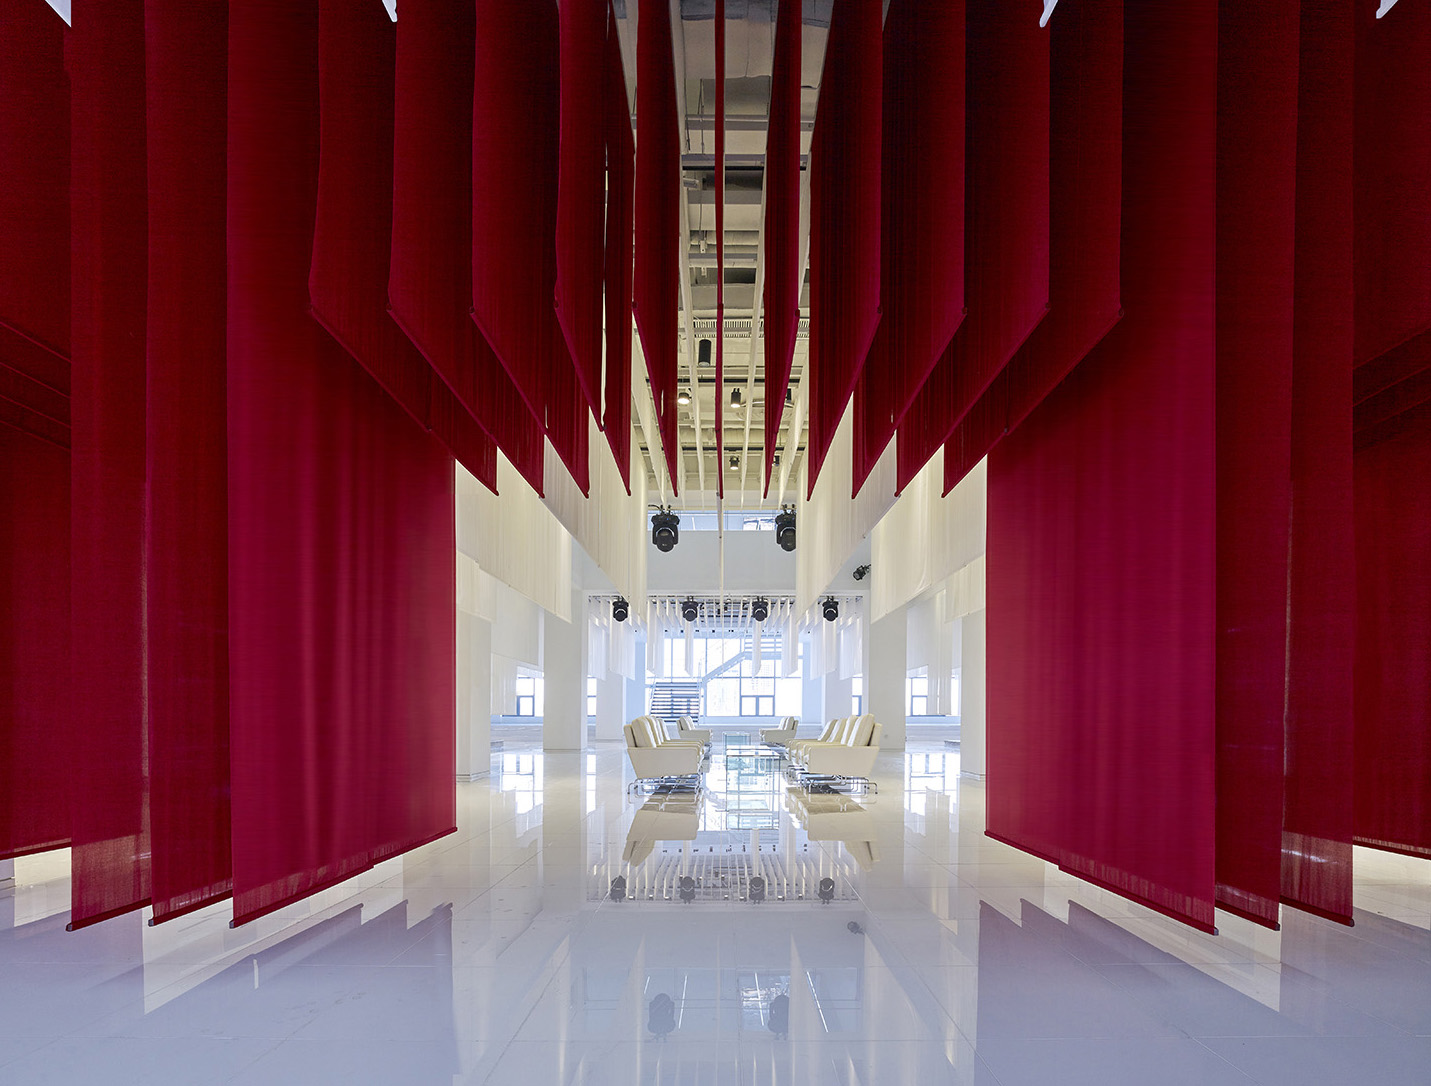 Layers of red fabric conjure images of a Chinese gate   YANG Chao Ying